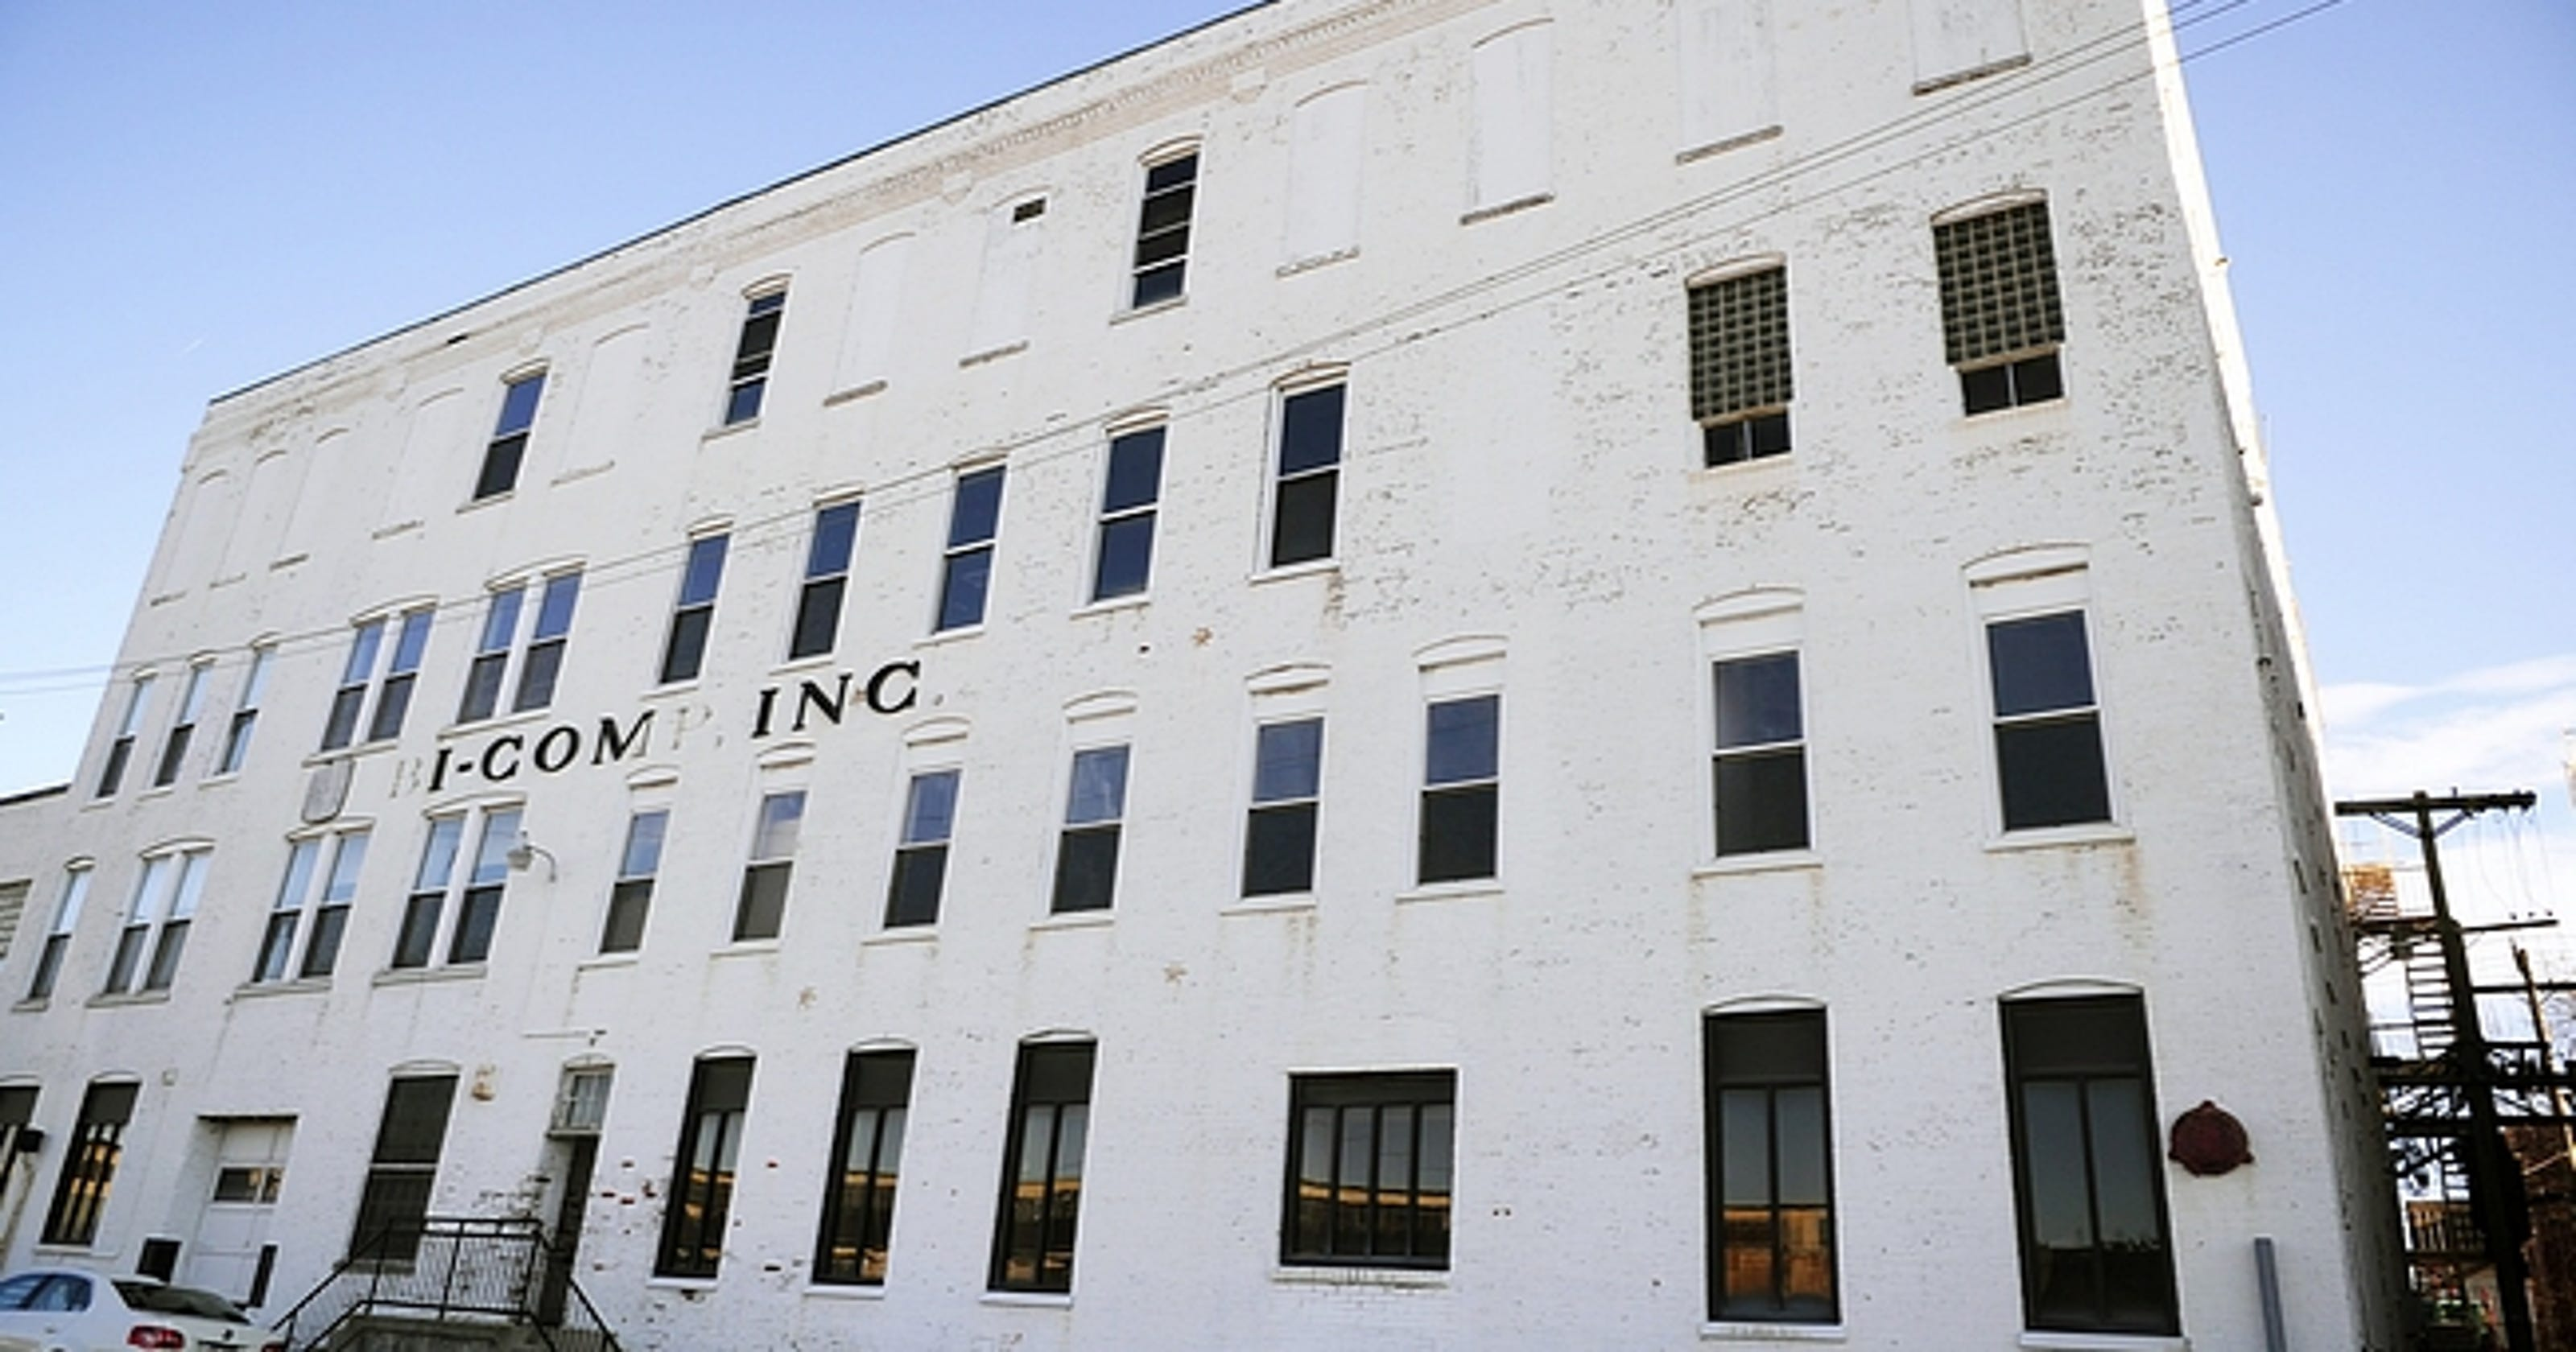 Live band members buy York property, plan millions in renovations